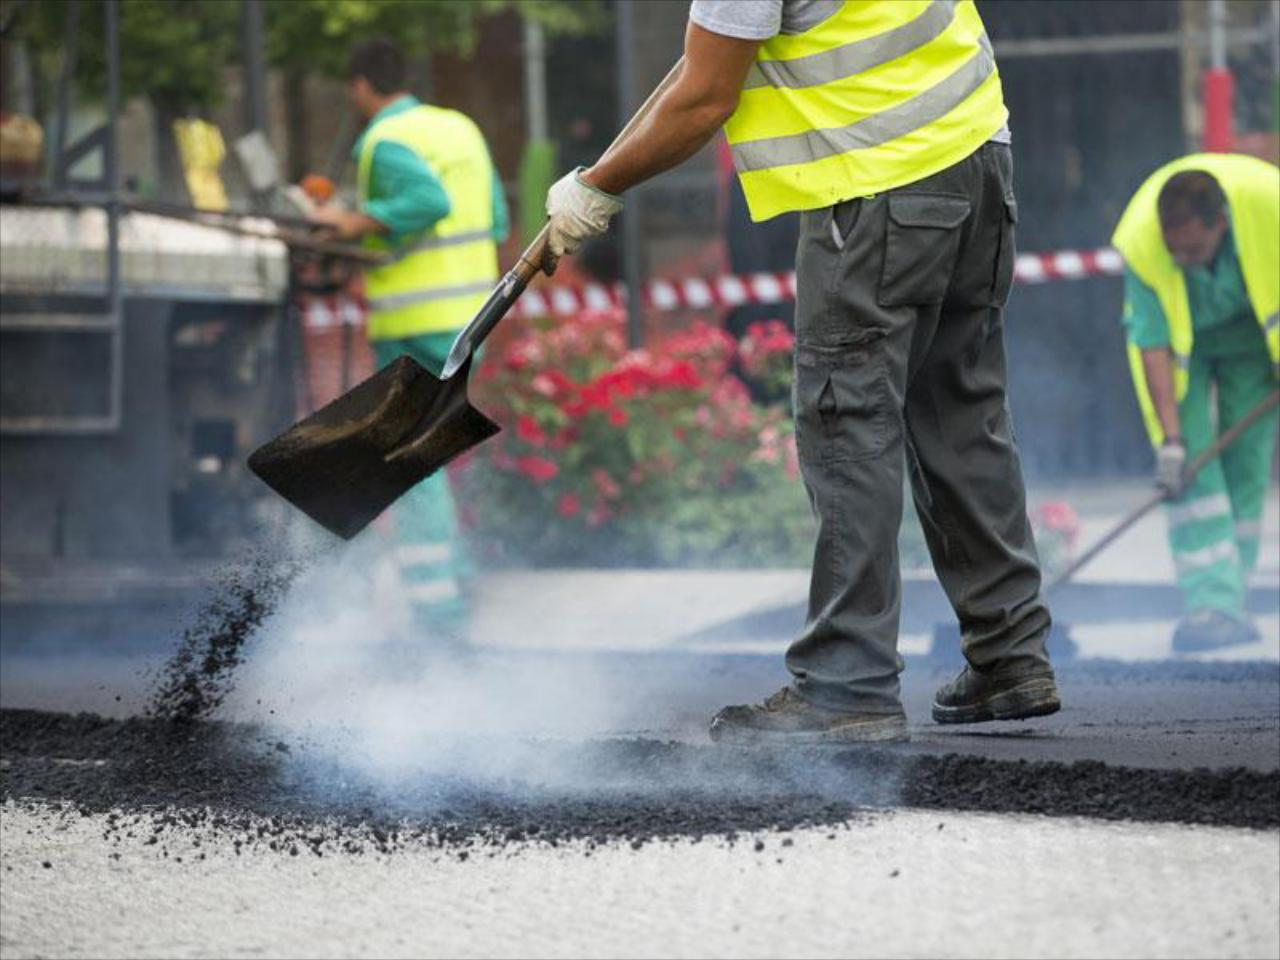 Restore your damaged asphalt to picture-perfect condition